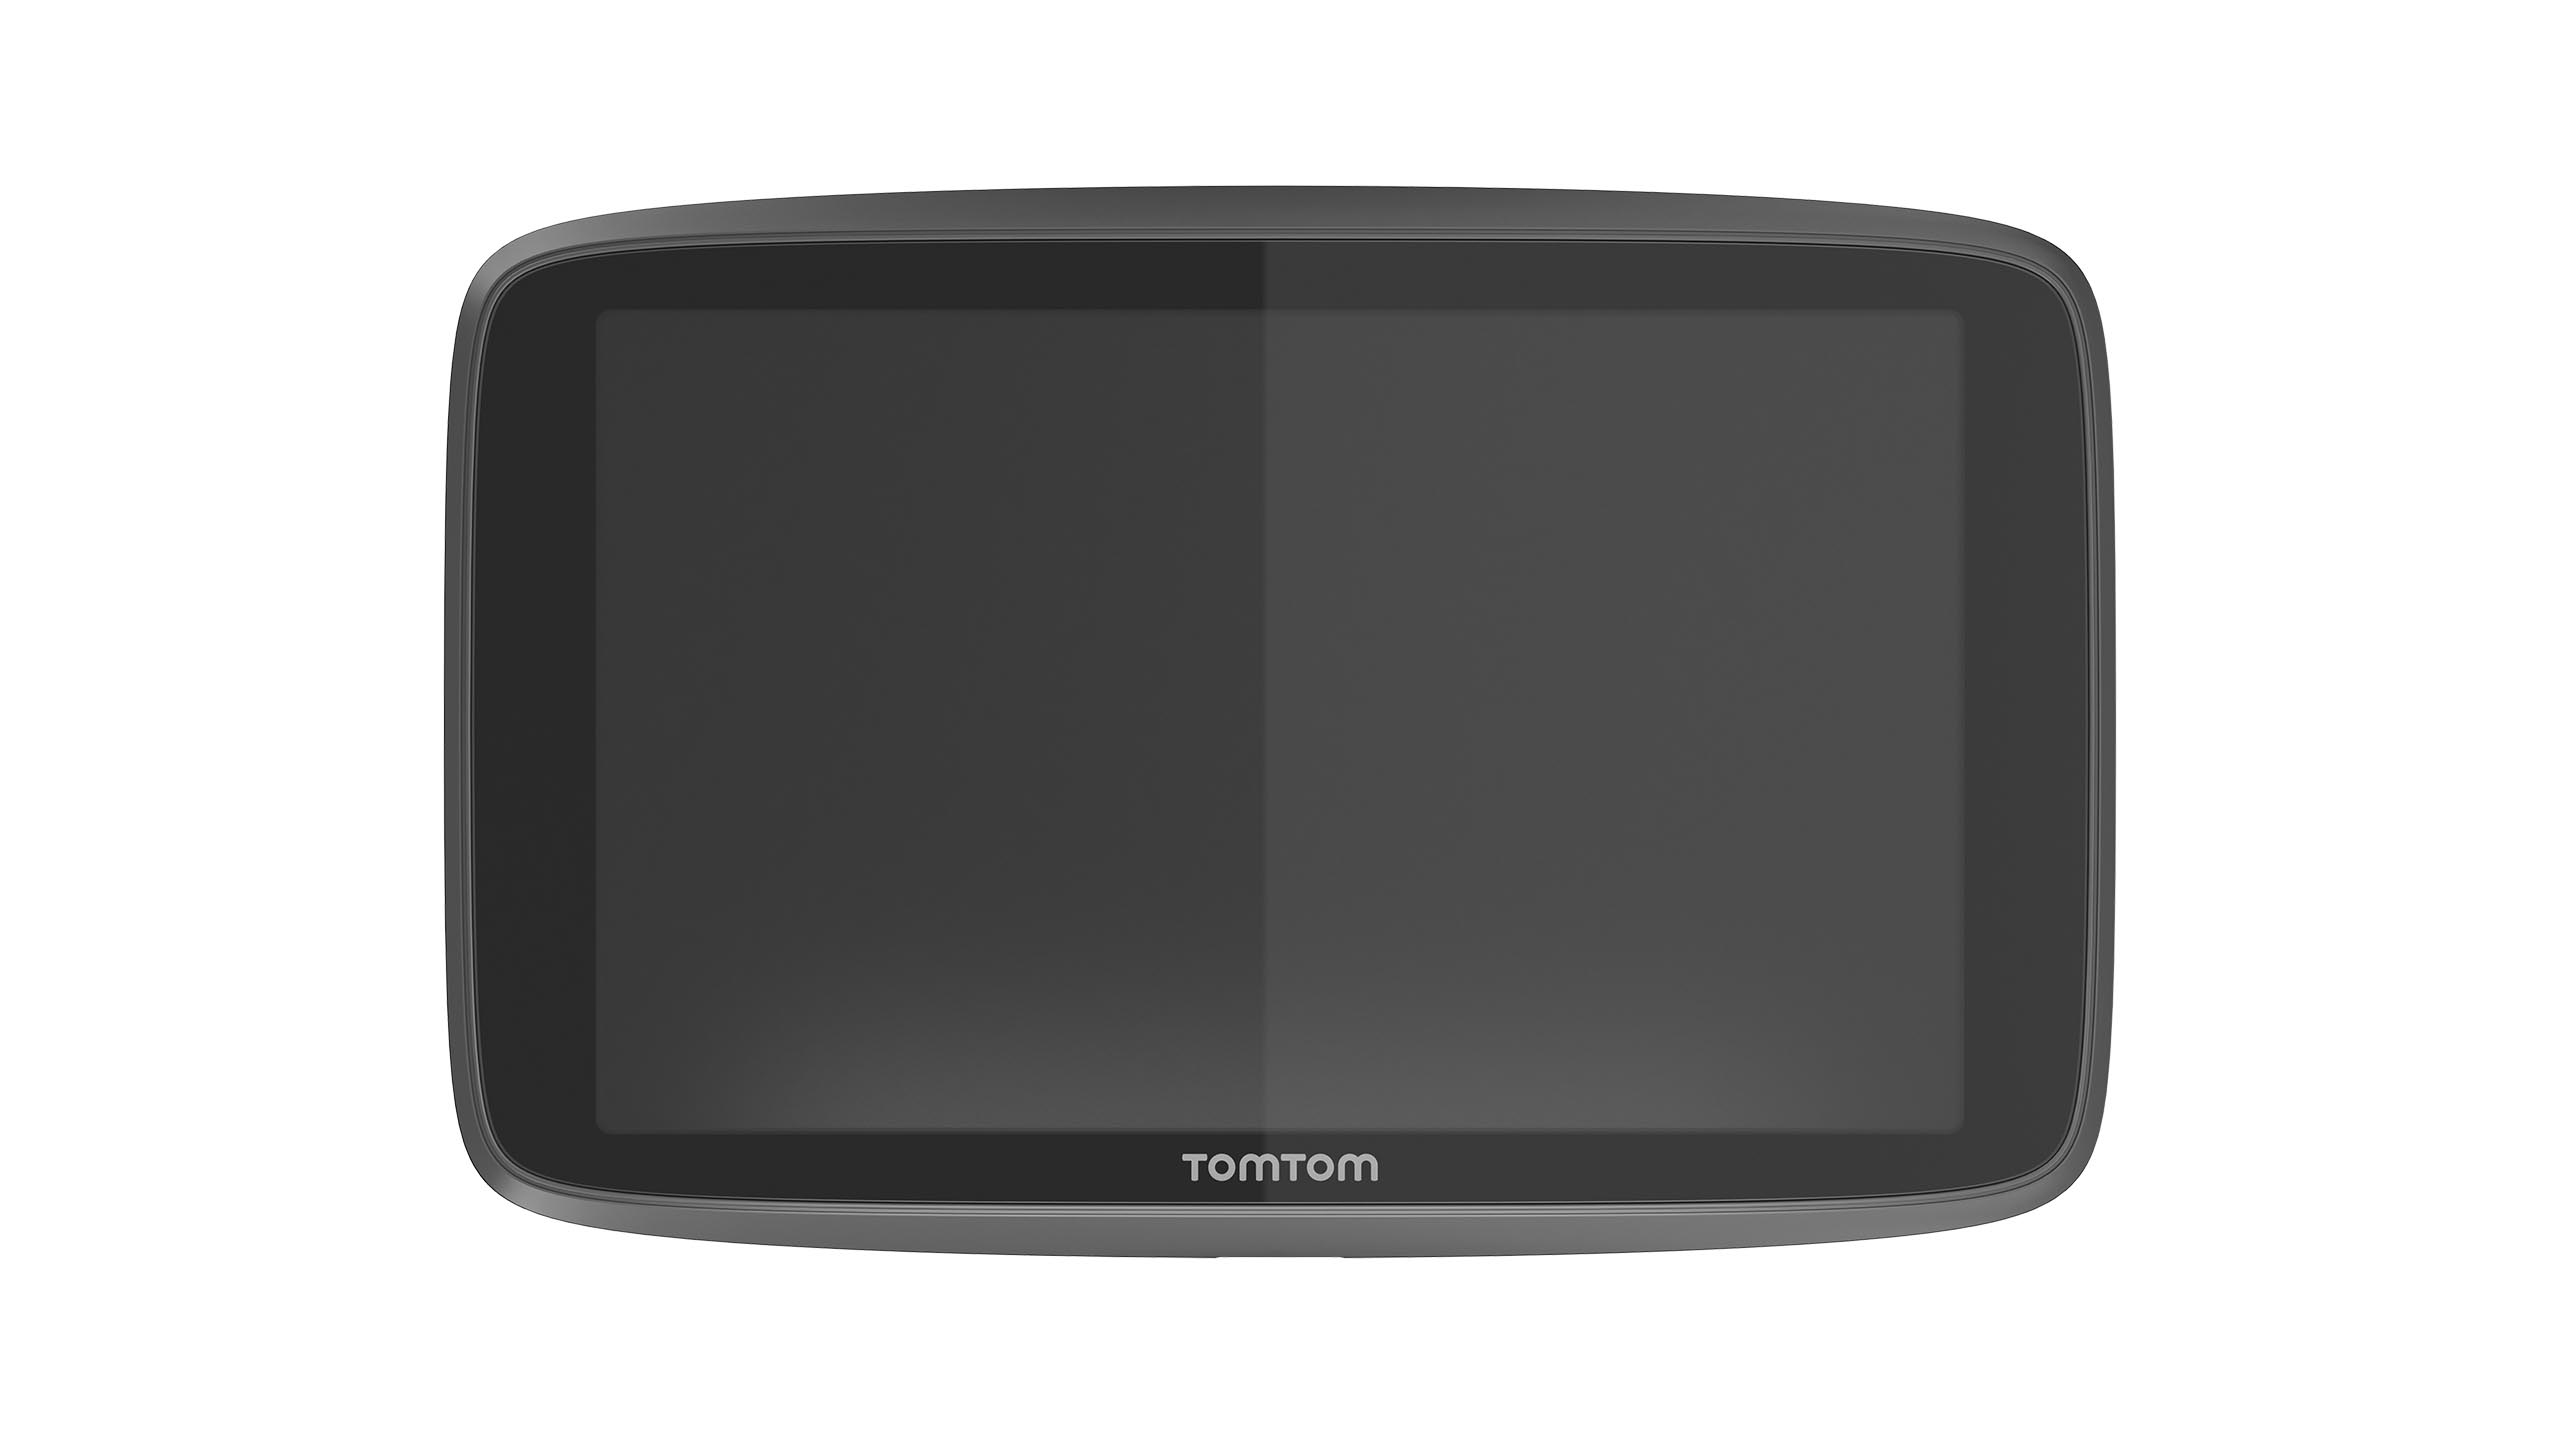 tomtom 6200 world navi 6 39 39 von expert technomarkt. Black Bedroom Furniture Sets. Home Design Ideas